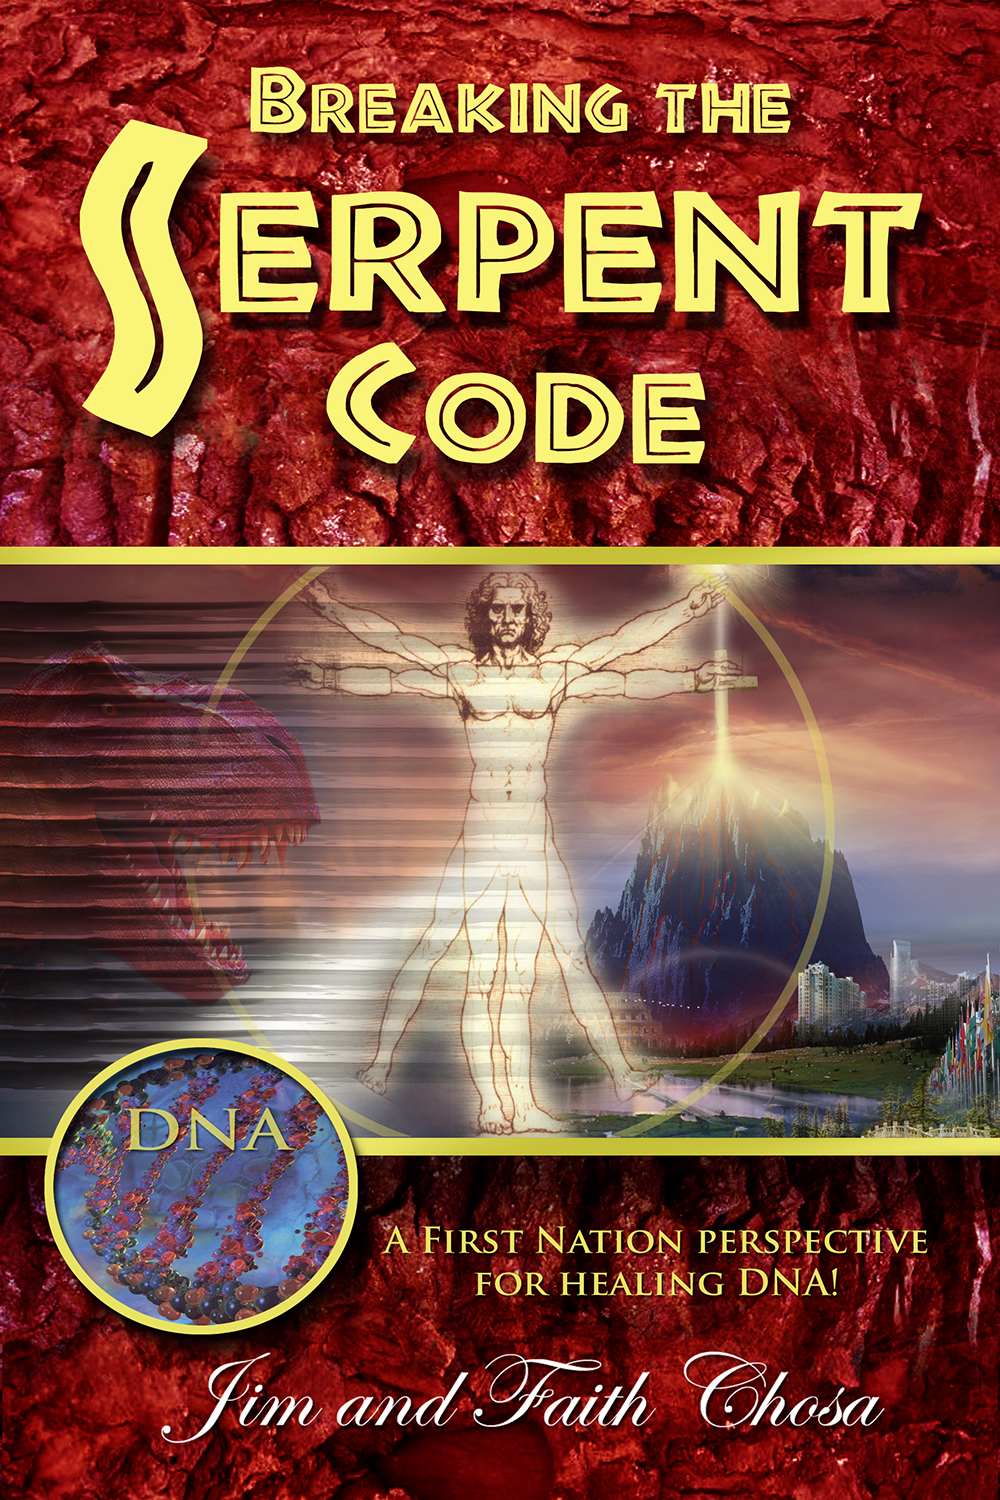 Serpent+Code+Book+Cover+copy+web.jpg